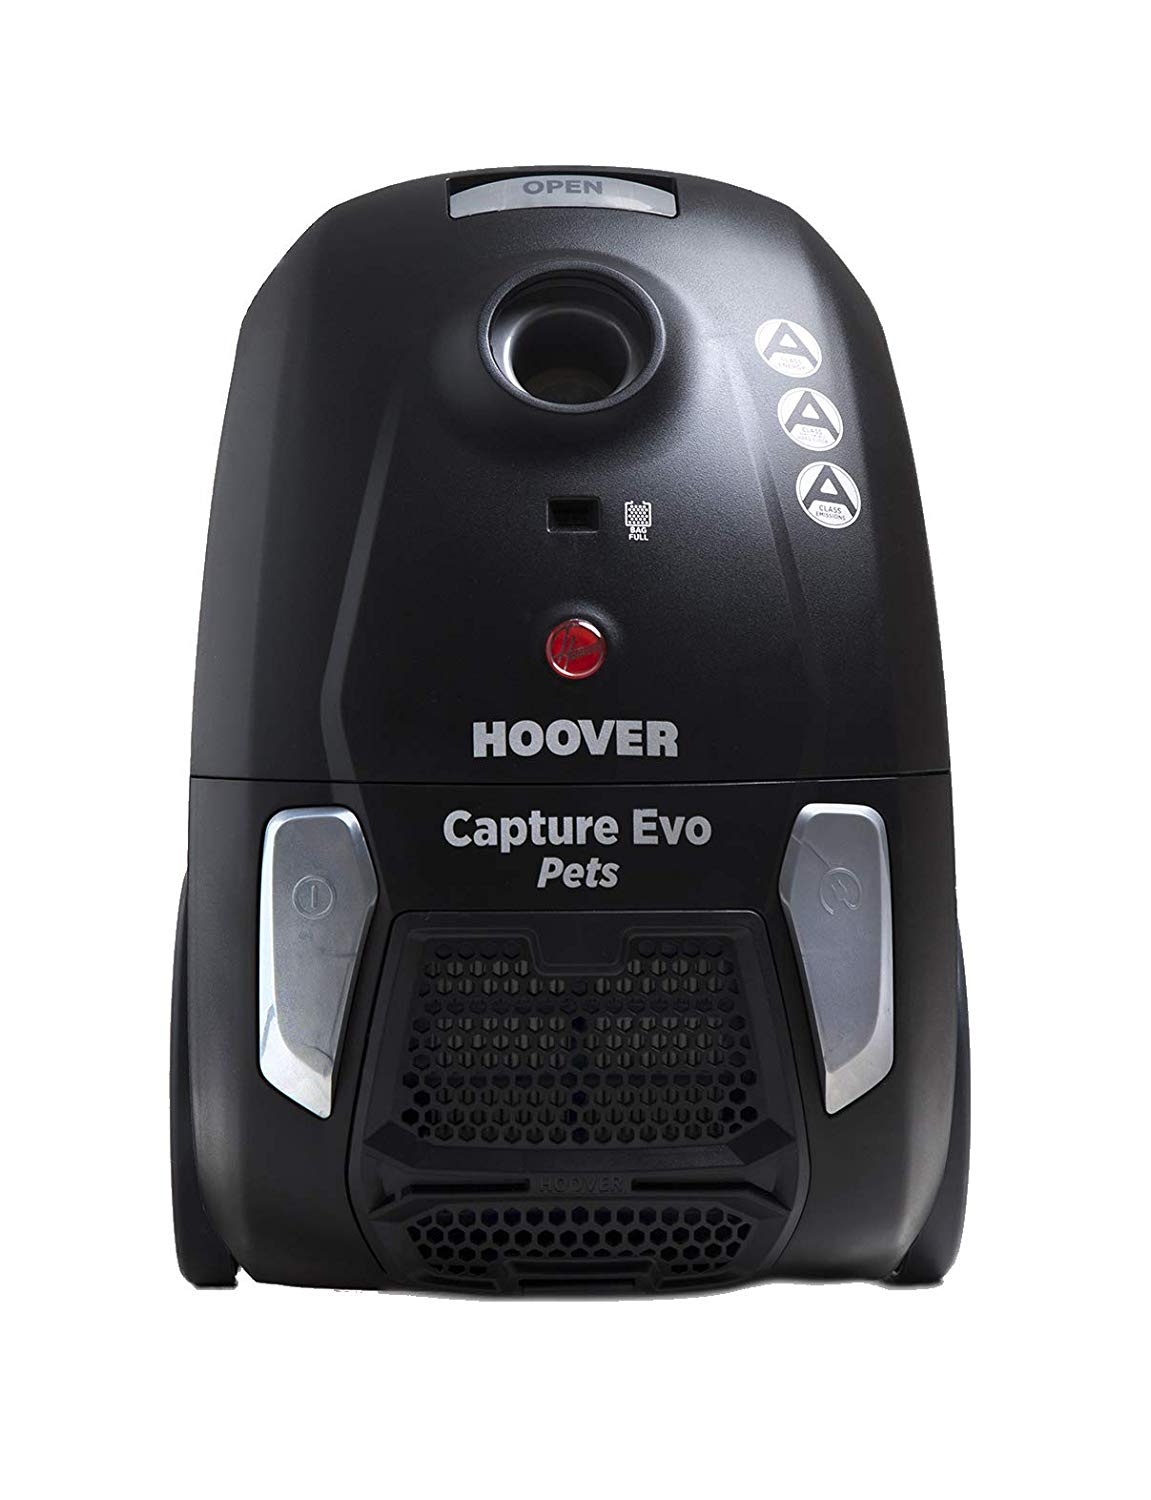 Vacuum Cleaners & Accessories Hoover Capture Pets Vacuum Cleaner